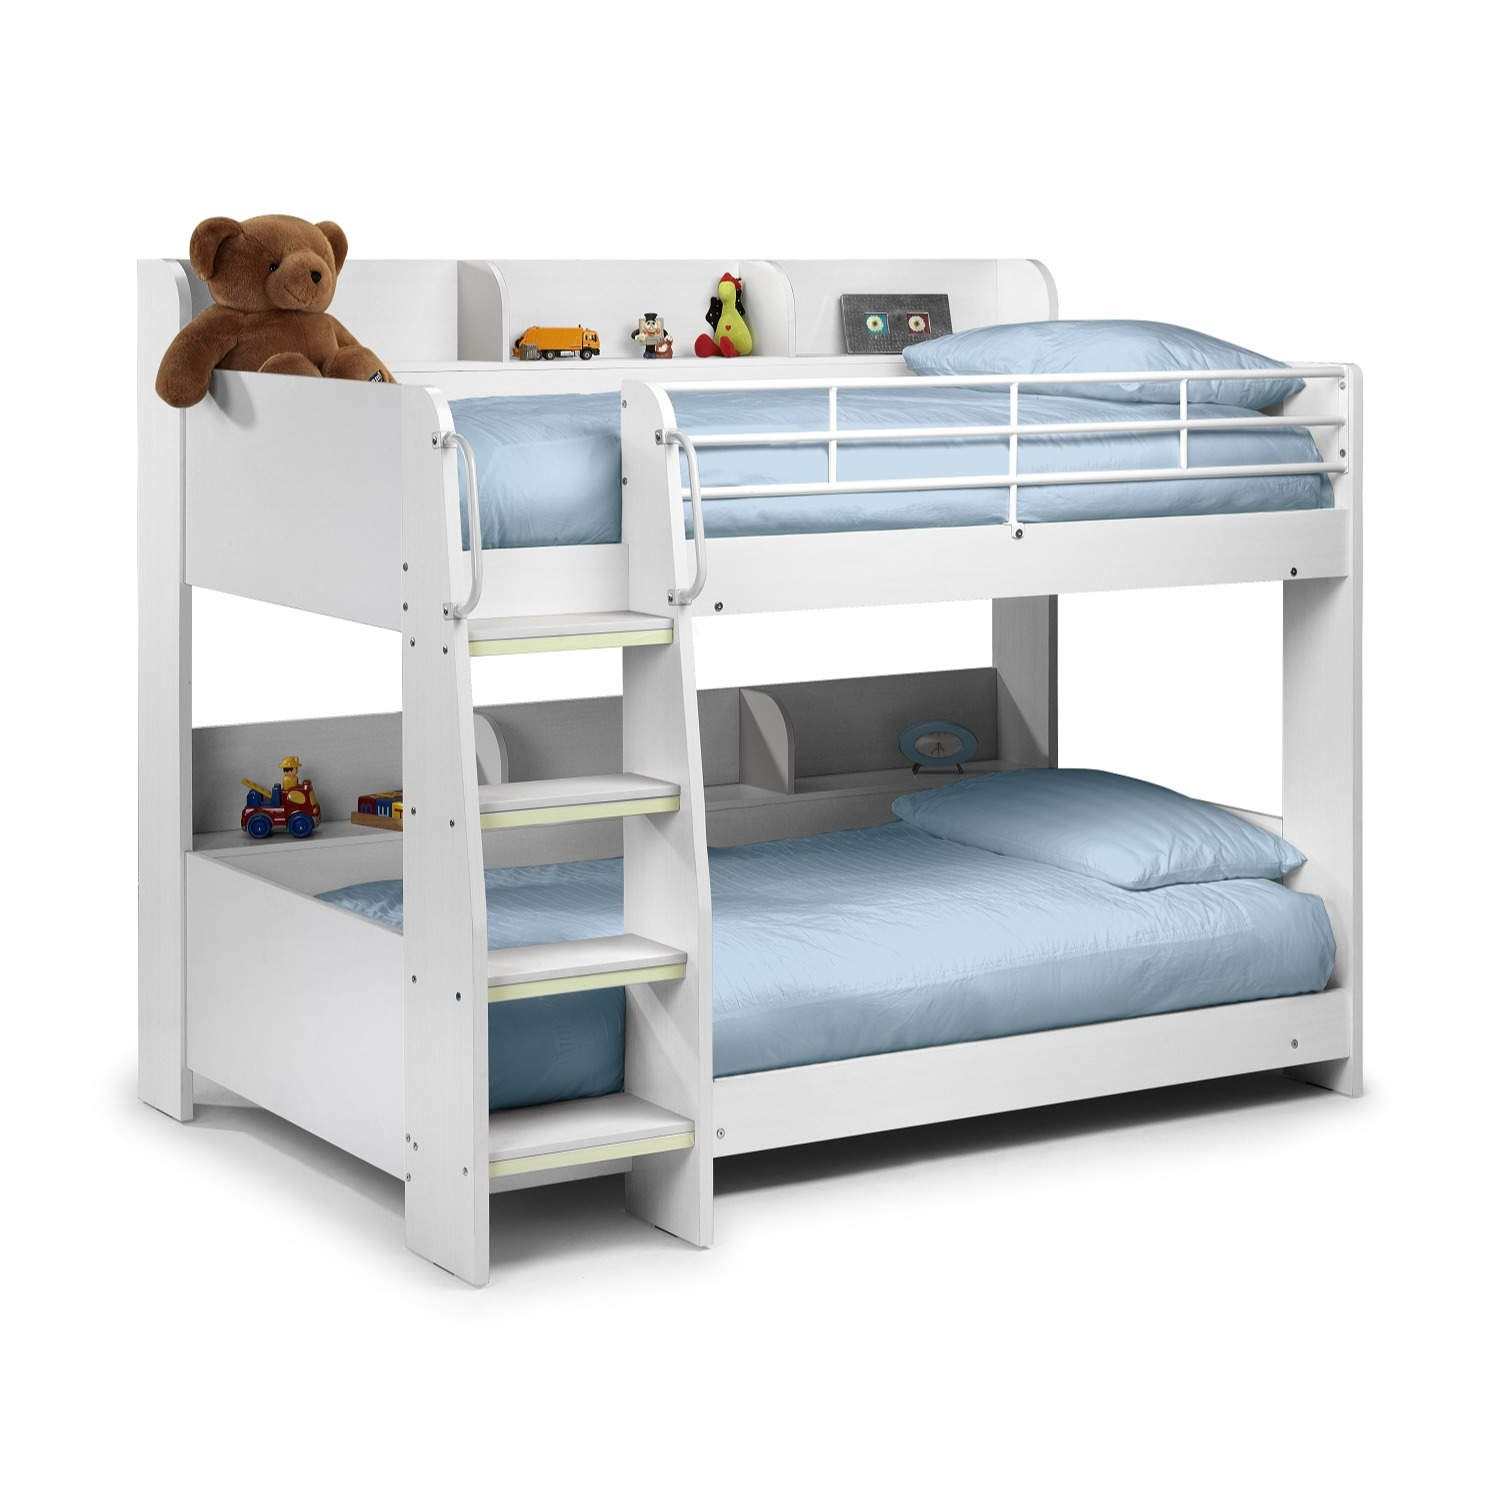 Modern kids white wooden julian bowen domino bunk bed for Wooden bunkbeds